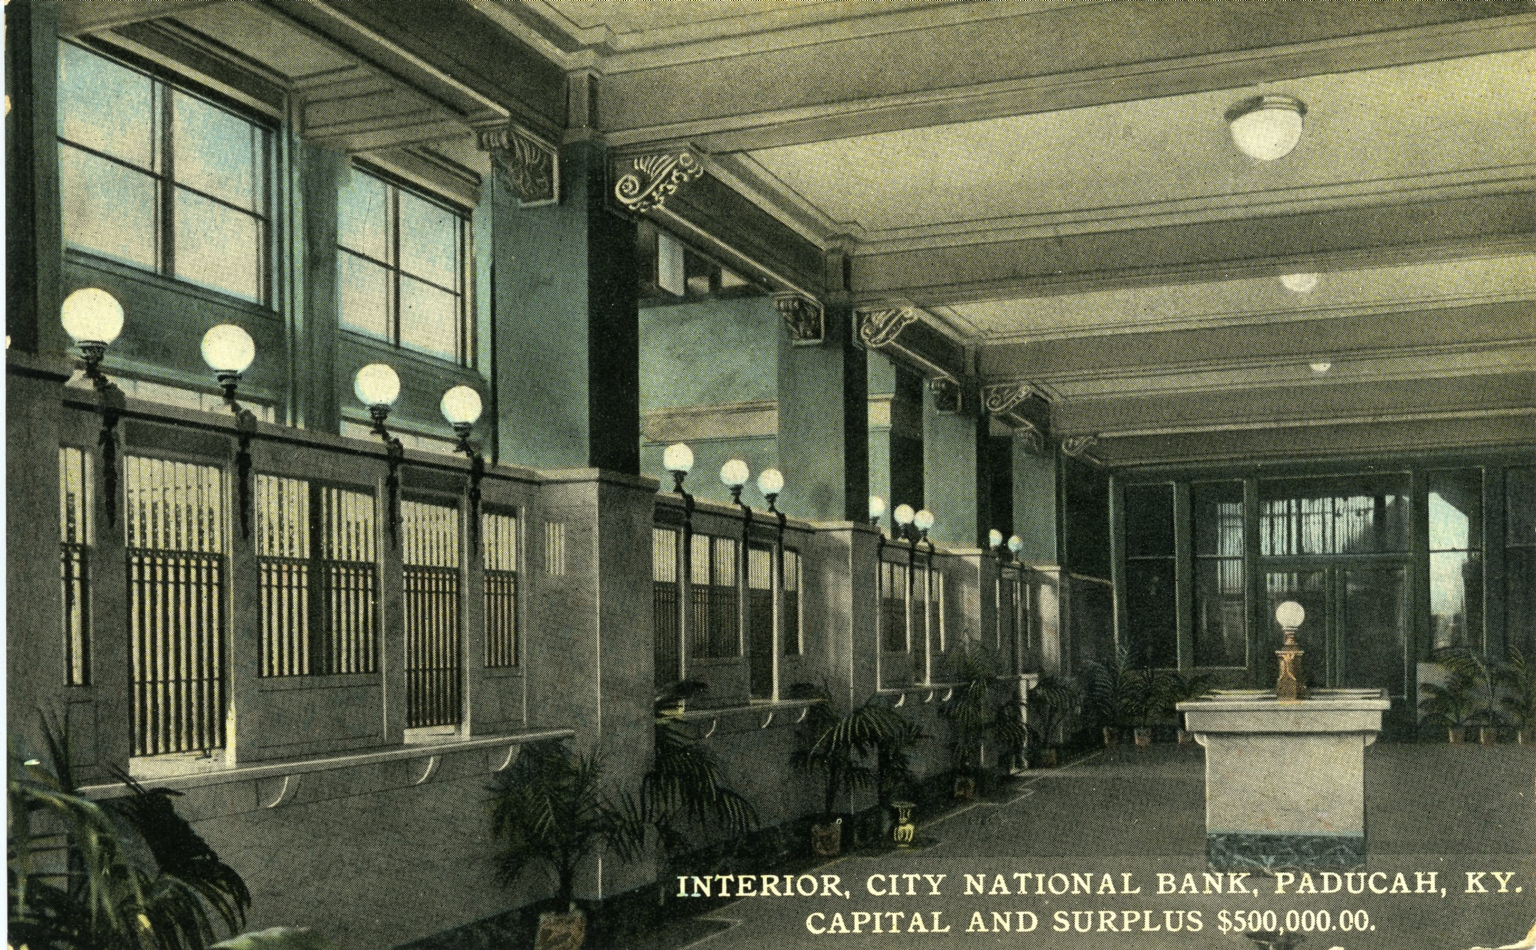 Interior of City National Bank in Paducah (KY)